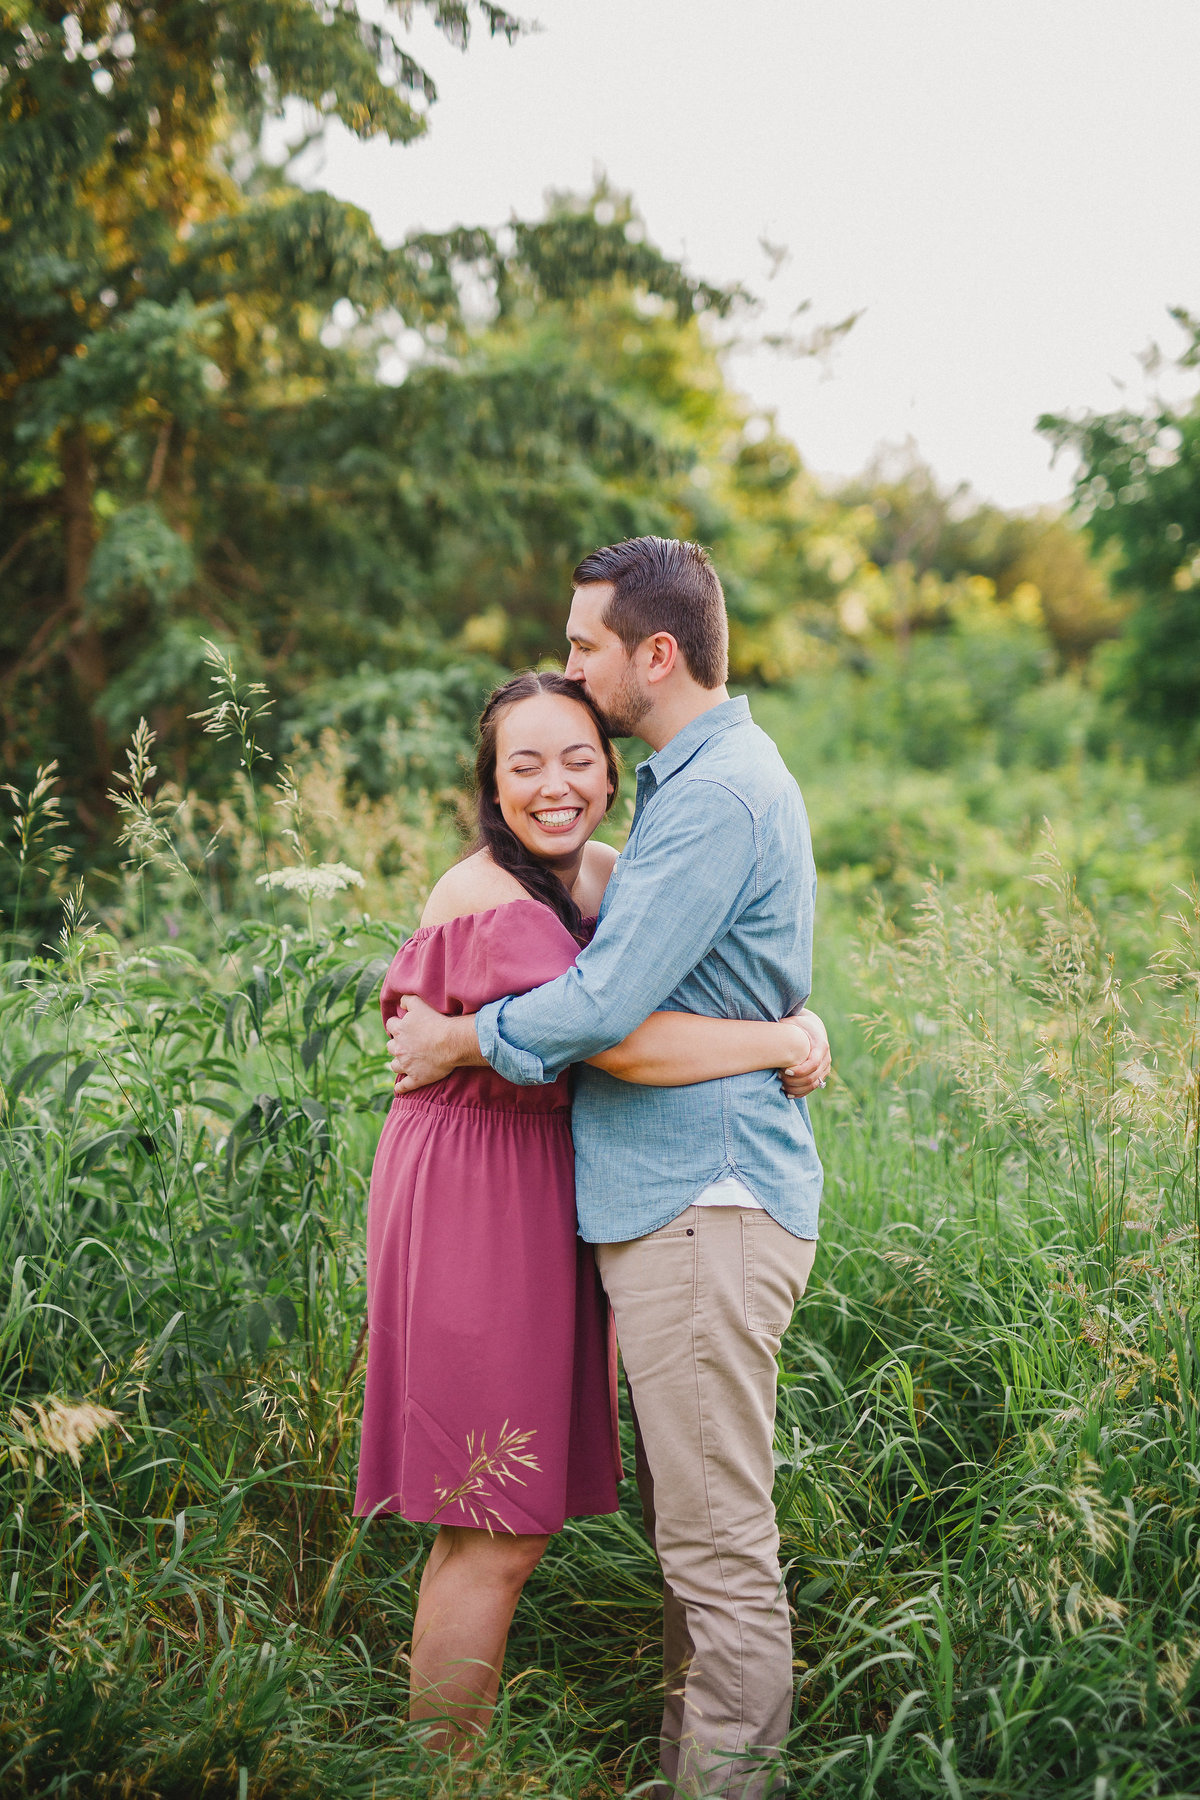 StephenAndMichelleEngaged_070617_WeeThreeSparrowsPhotography_039